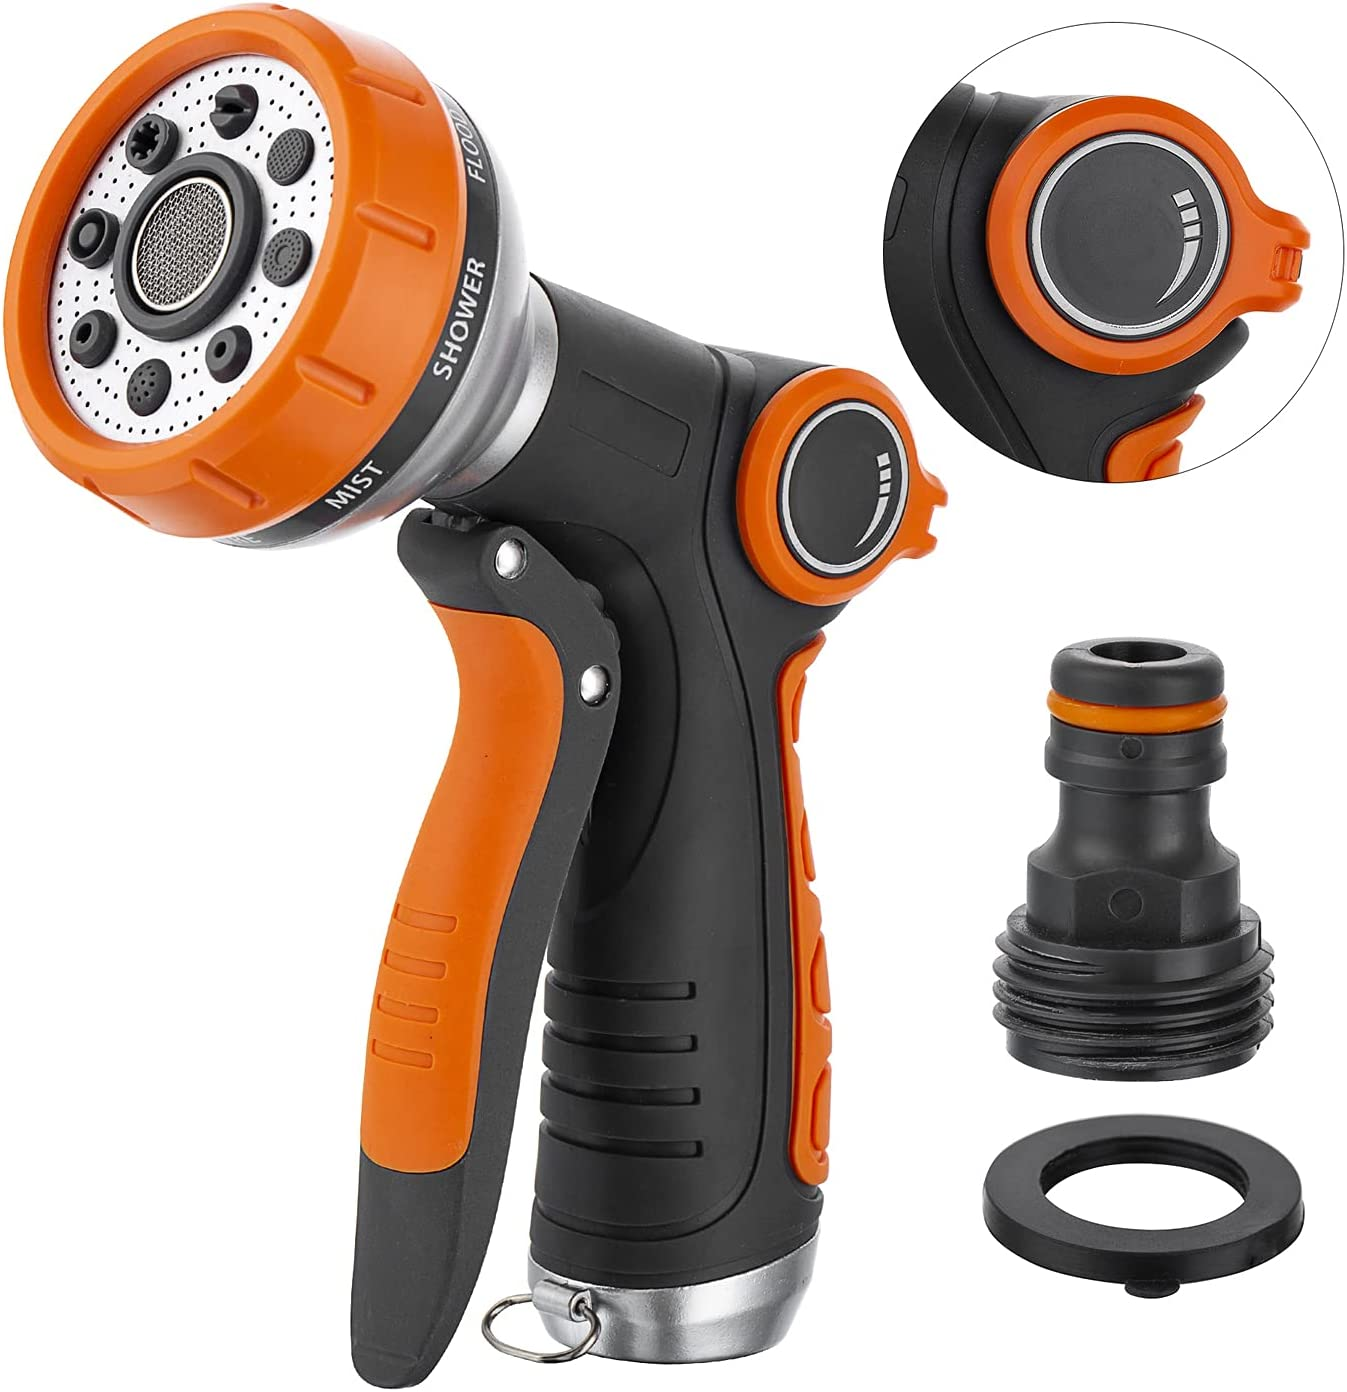 Garden Hose Nozzle Spray Nozzle, Metal Heave Duty Water Nozzle, 8 Watering Patterns High Pressure Nozzle Sprayer for Watering Plants, Cleaning, Car Wash and Showering Dog & Pets